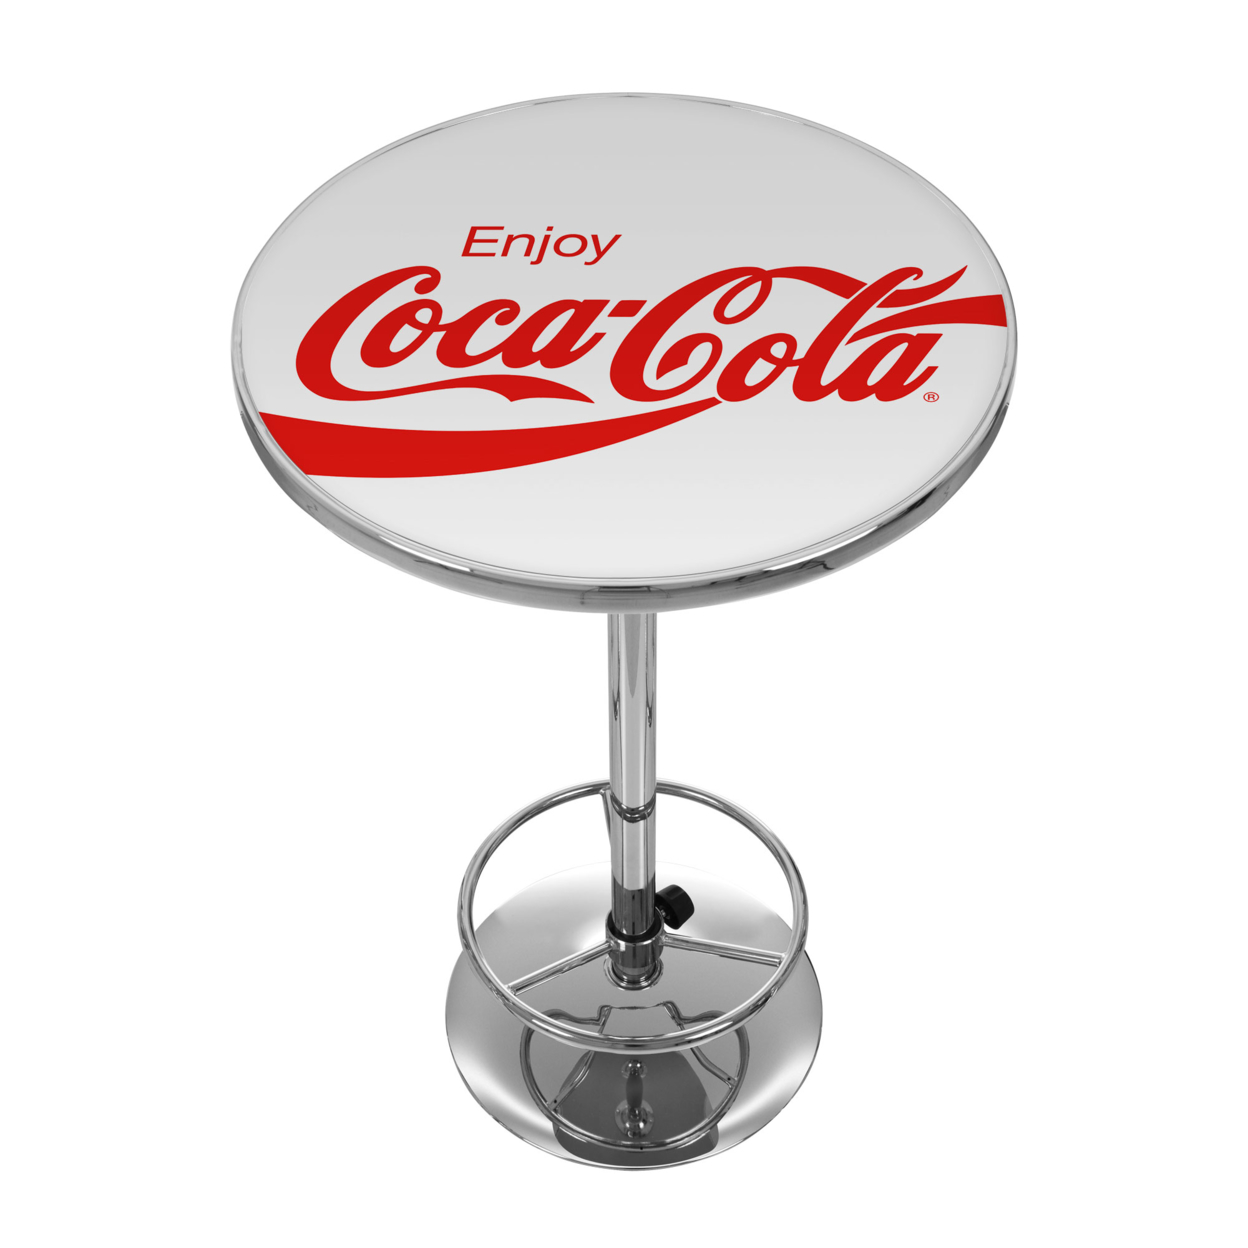 Enjoy Coke White 42 Inch Pub Table ремень skin enjoy zd027